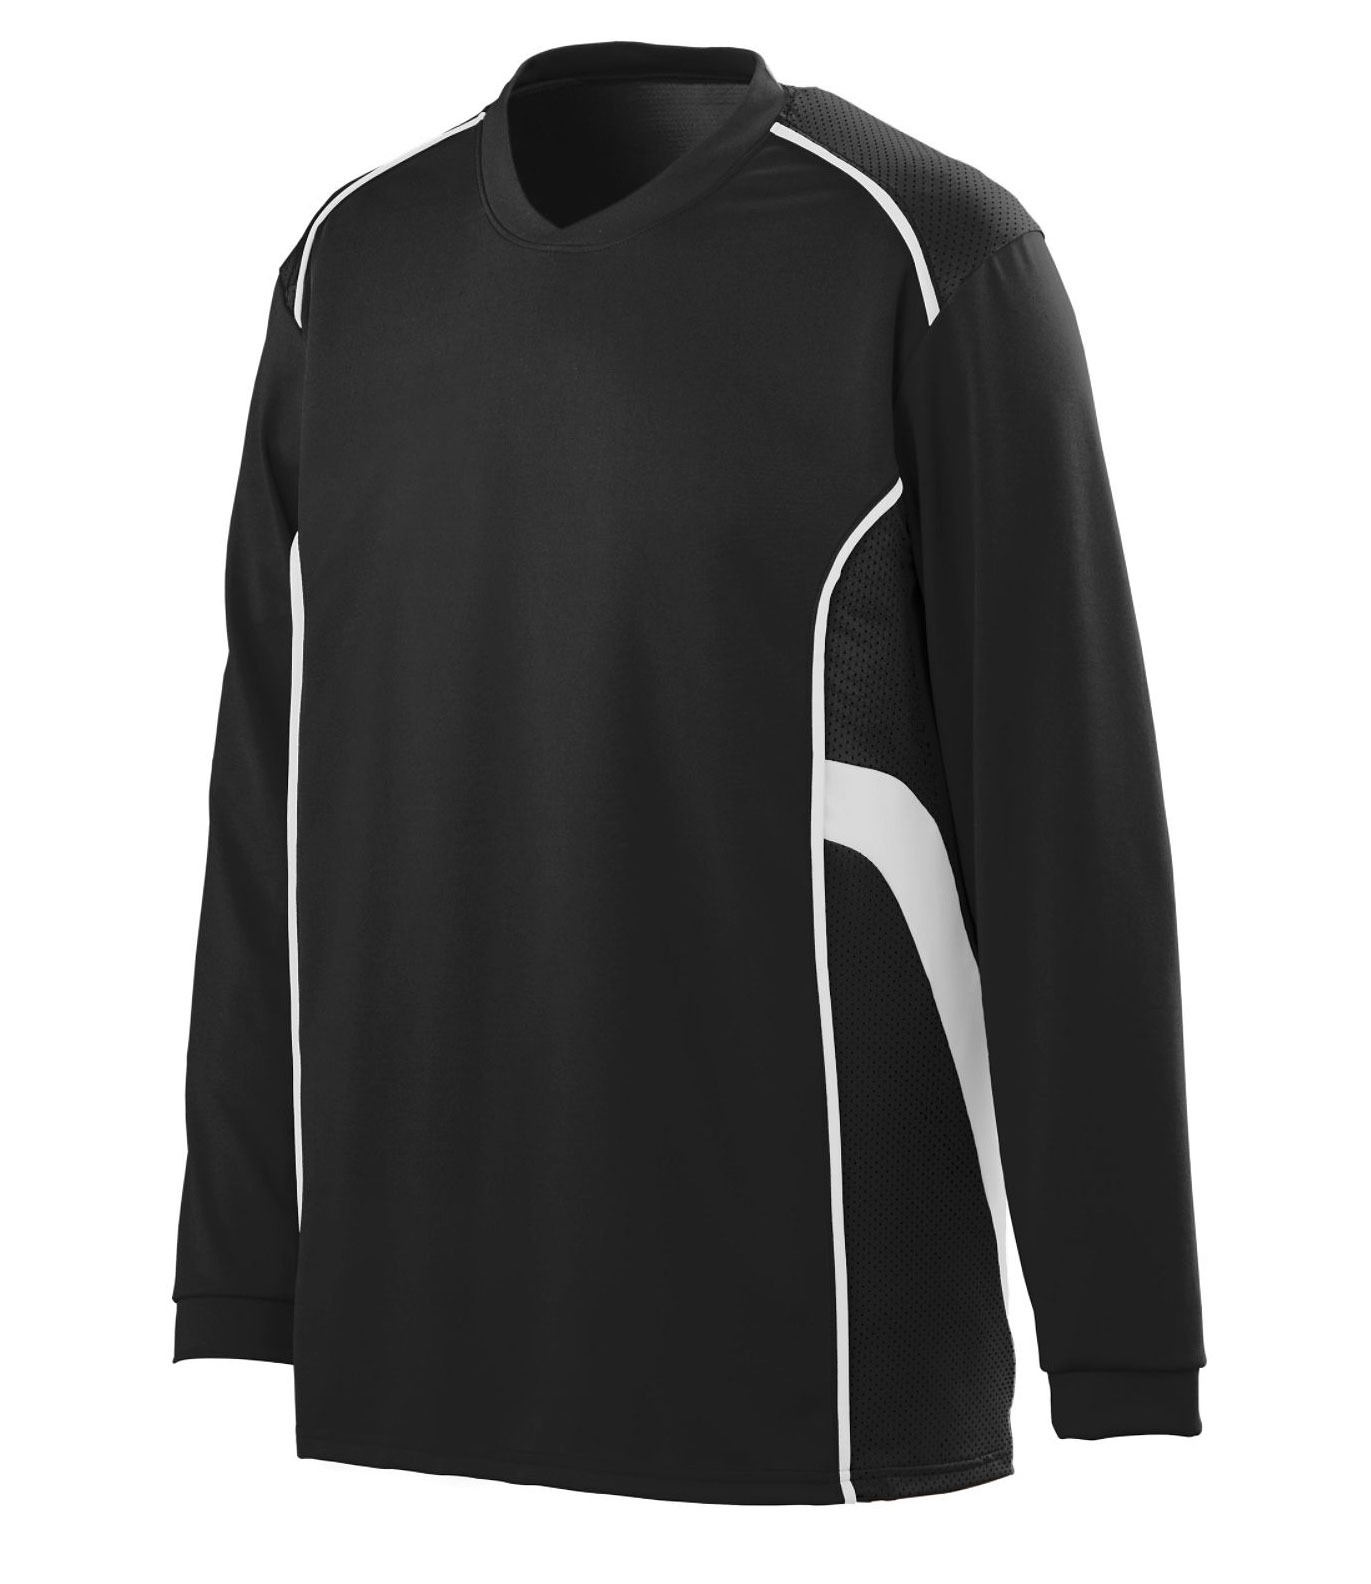 Youth Winning Streak Long Sleeve Jersey